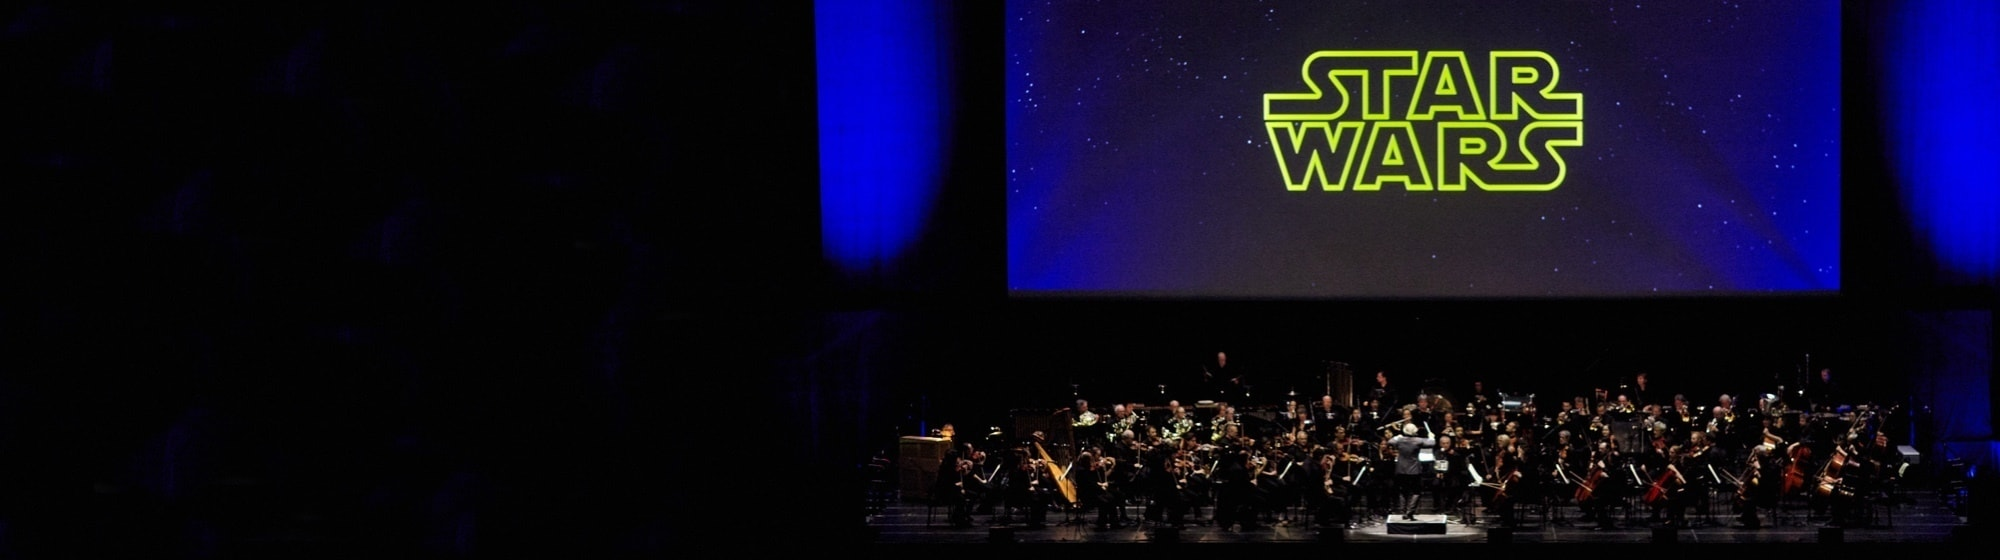 Star Wars ROTJ In Concert - Royal Albert Hall